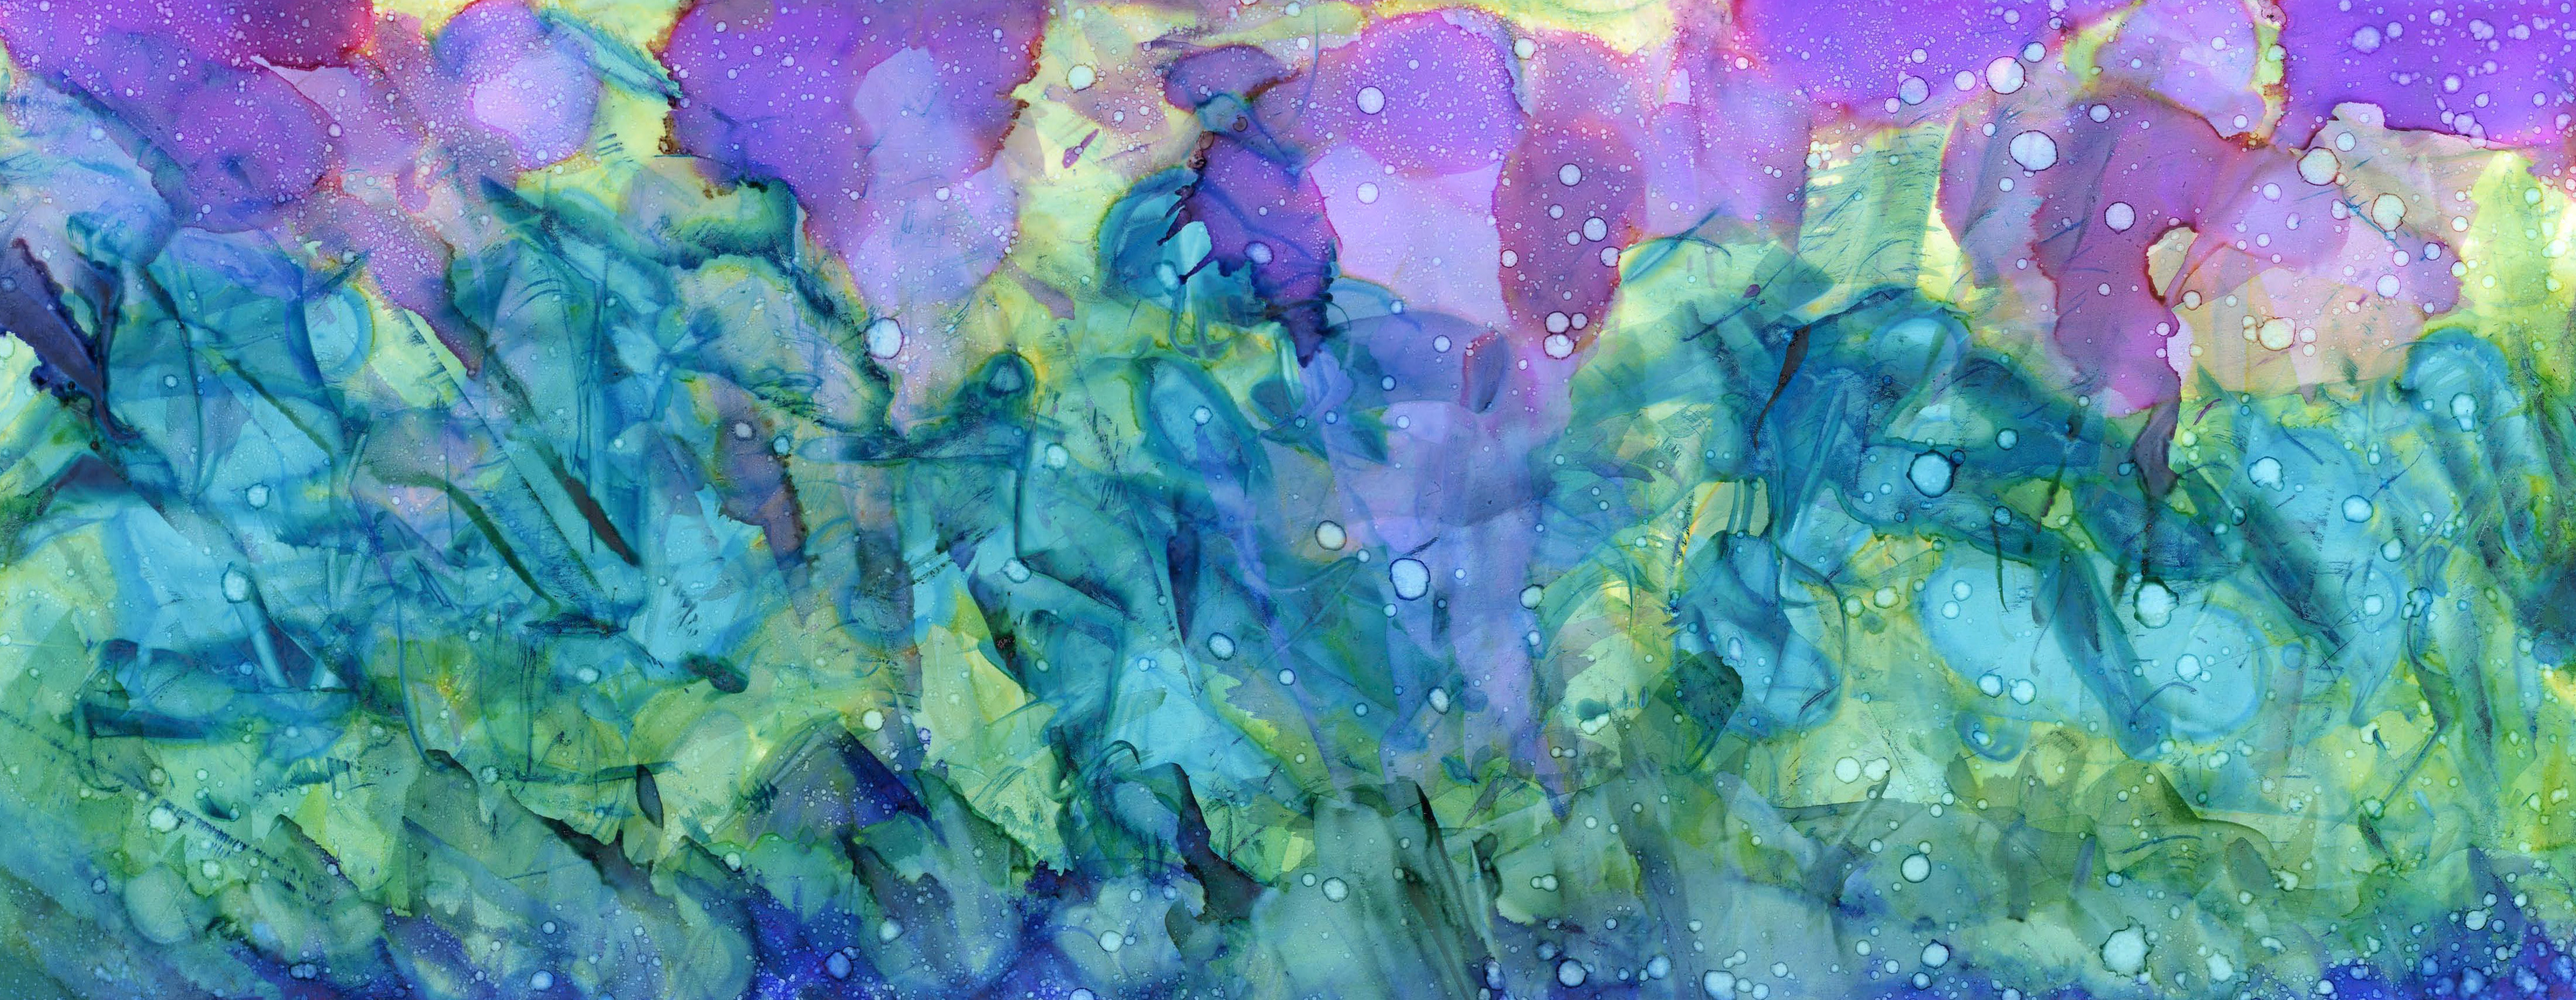 Morning Flowers Alcohol Ink 6 X 15 - Sold